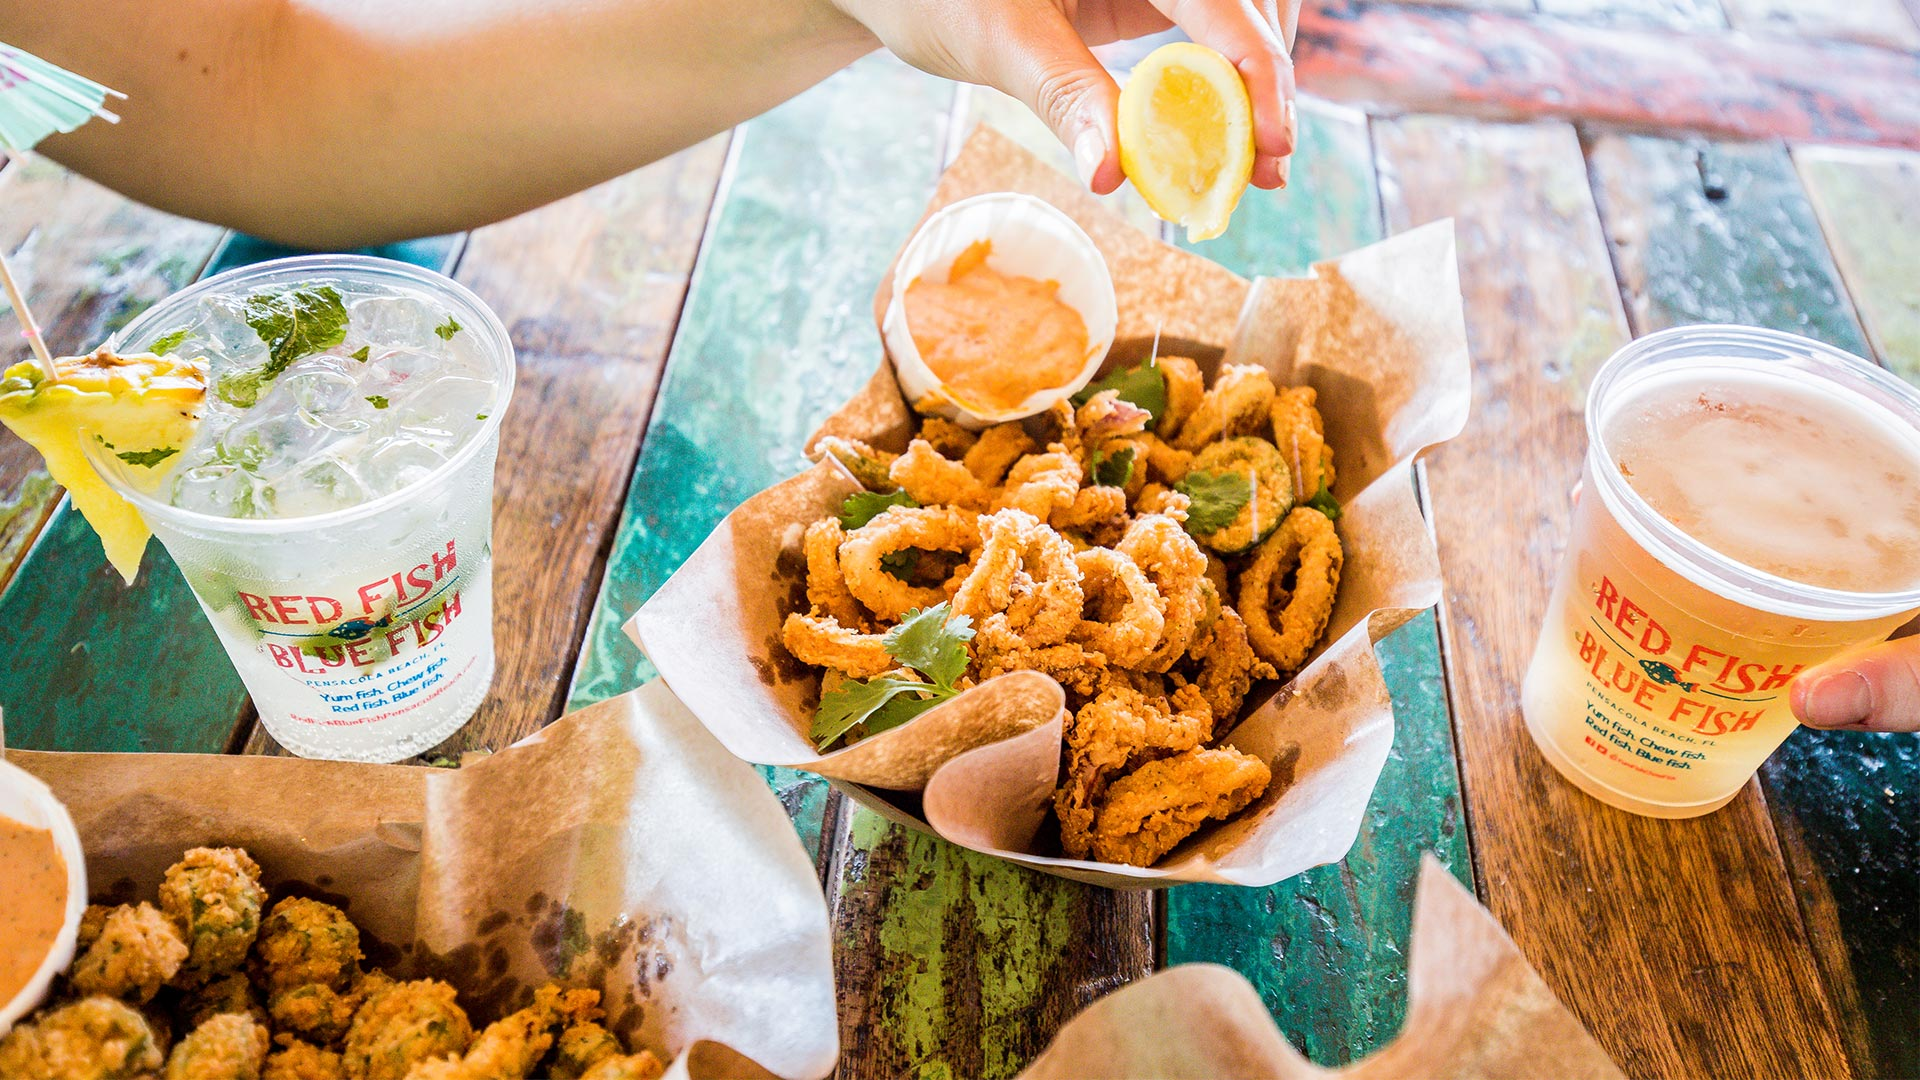 Small Bites | Fried Okra + Pimento Cheese + Calamari | Red Fish Blue Fish Pensacola Beach